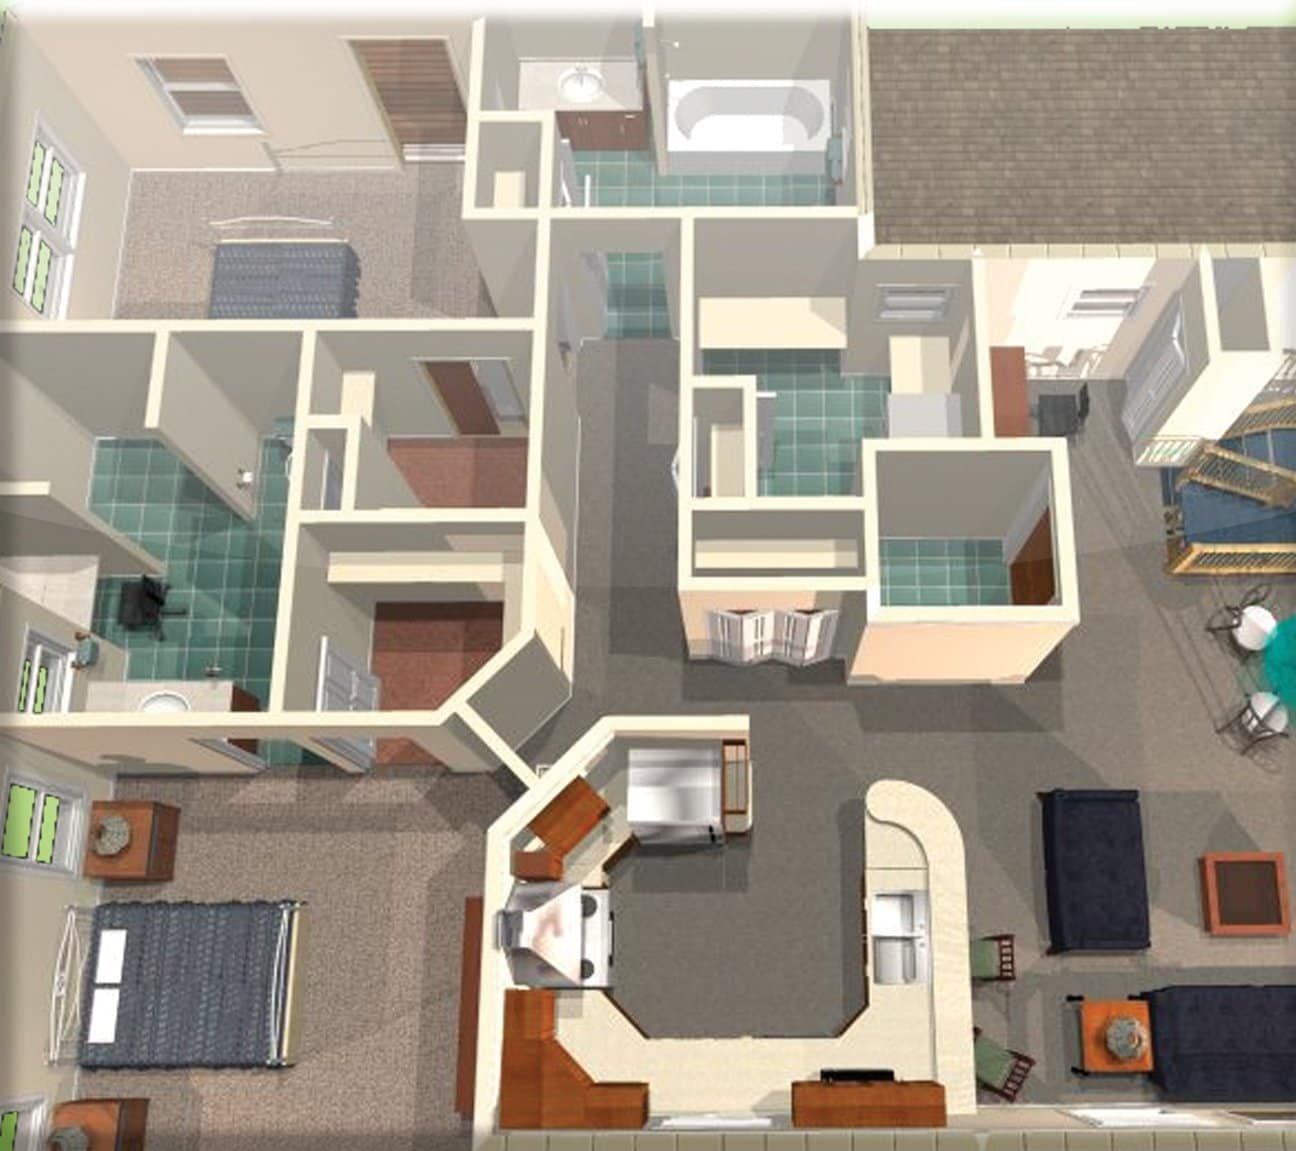 3d Home Plan Design Software Download Home Design Software 2015 3d Home Design Software Free For Mac Home Floor Plan Design Software Free Download Building Plan Pad Screenshot Jpg Uncategorized Excellent 3d